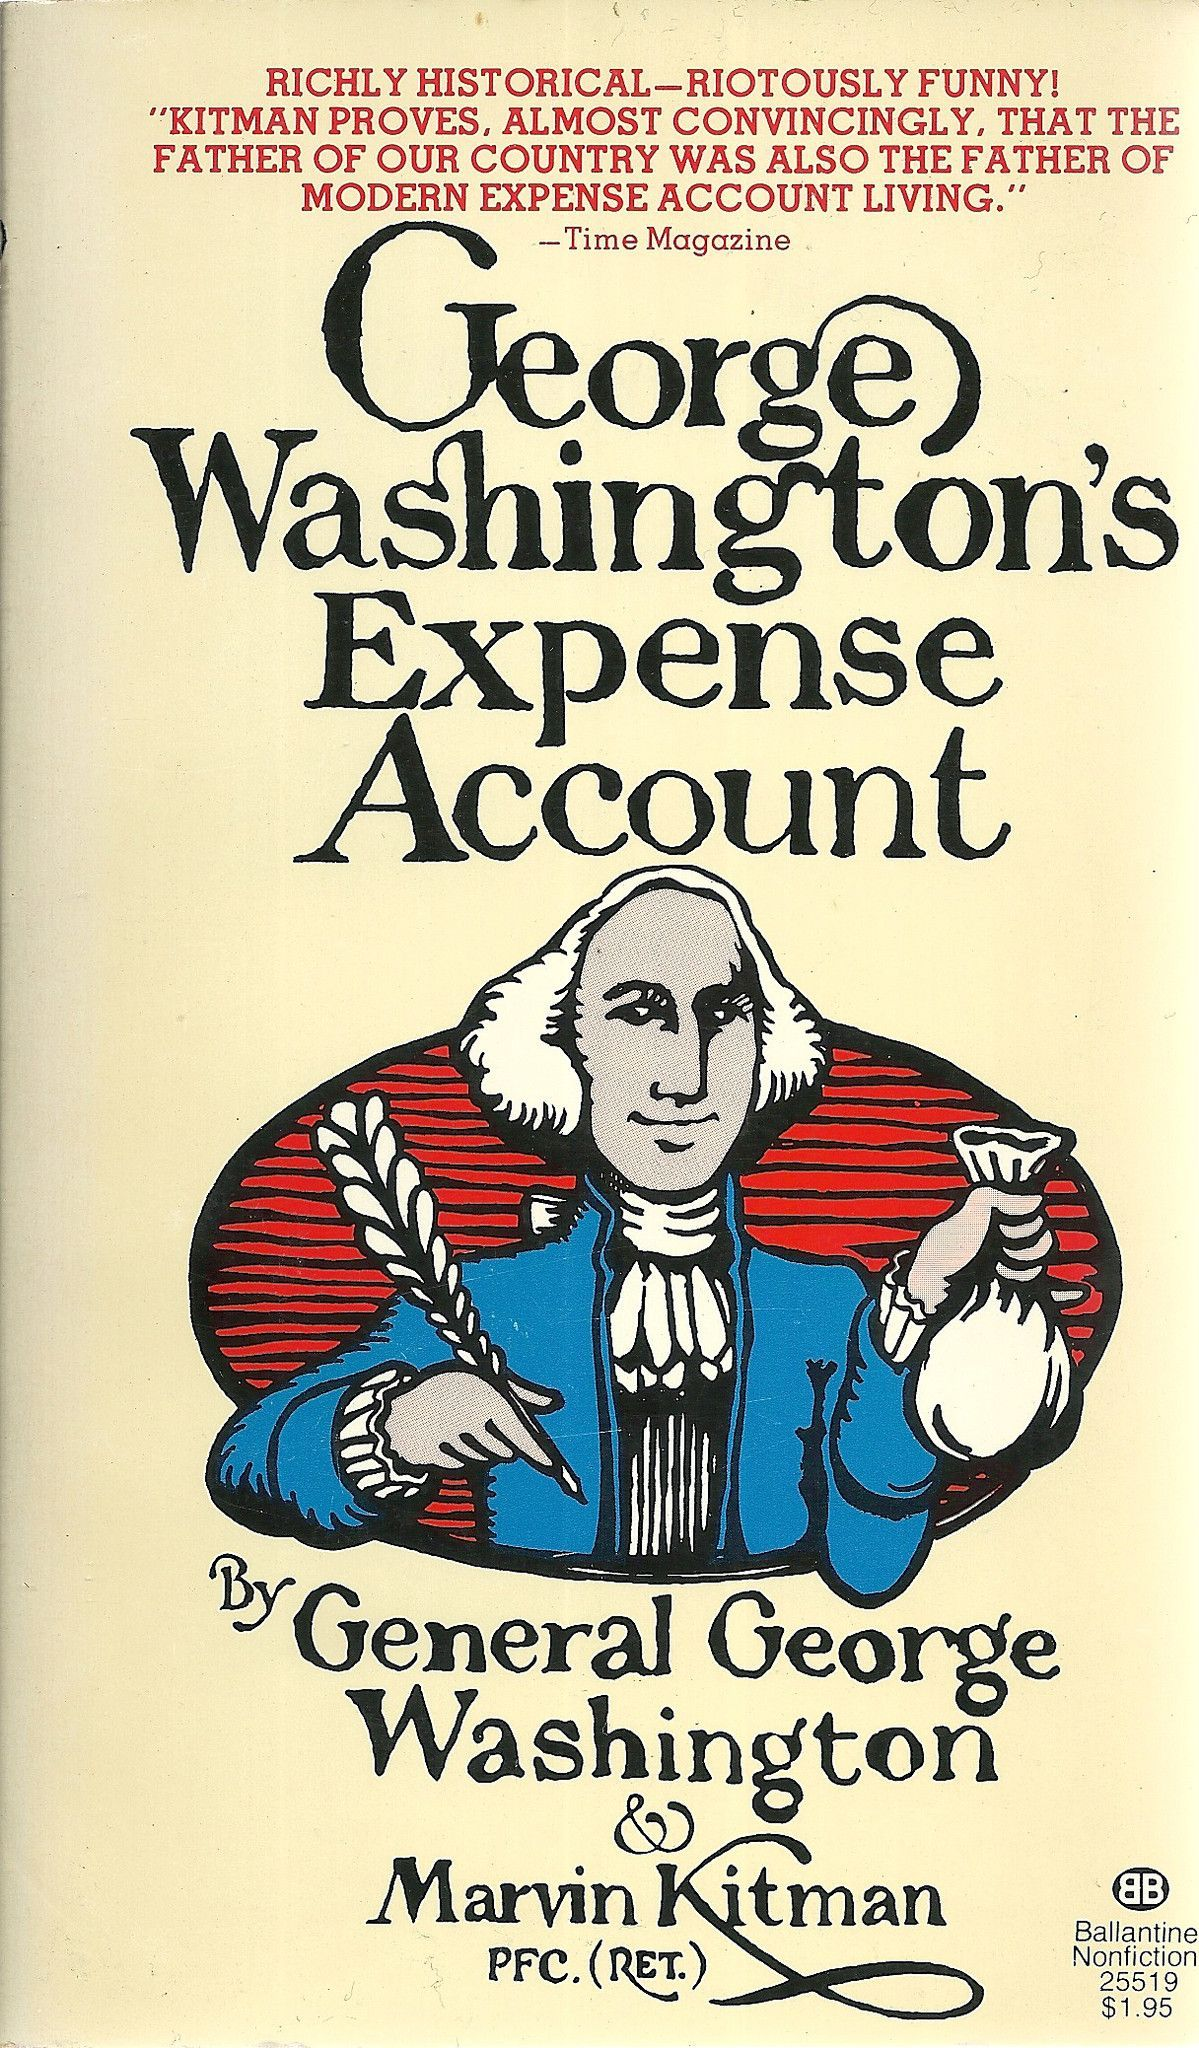 George Washinton's Expense Account